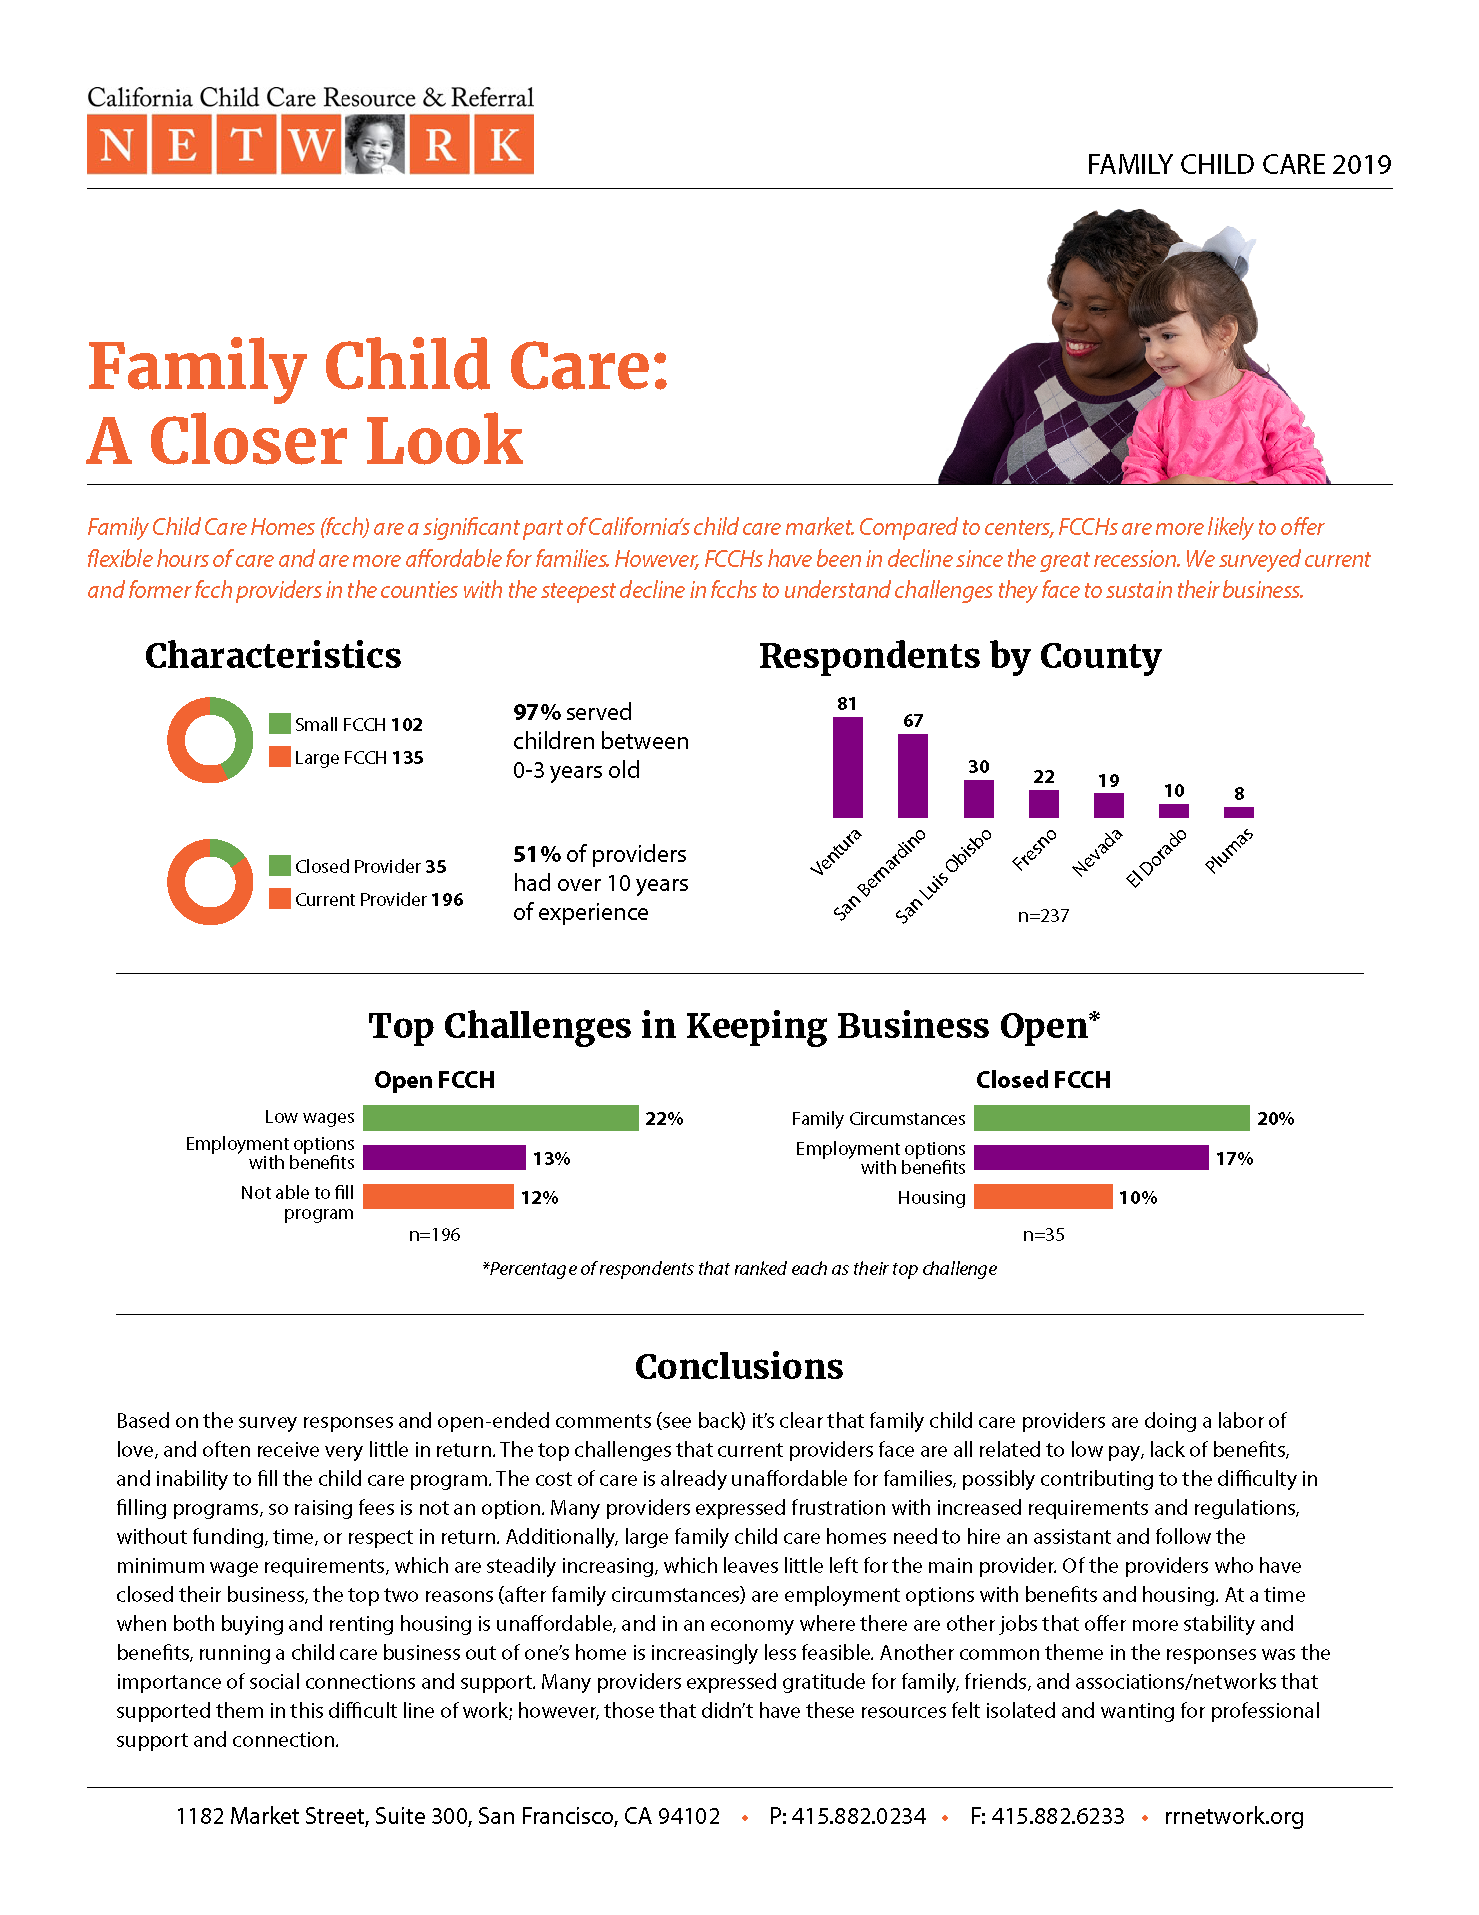 Family Child Care Issues: A closer look 2019